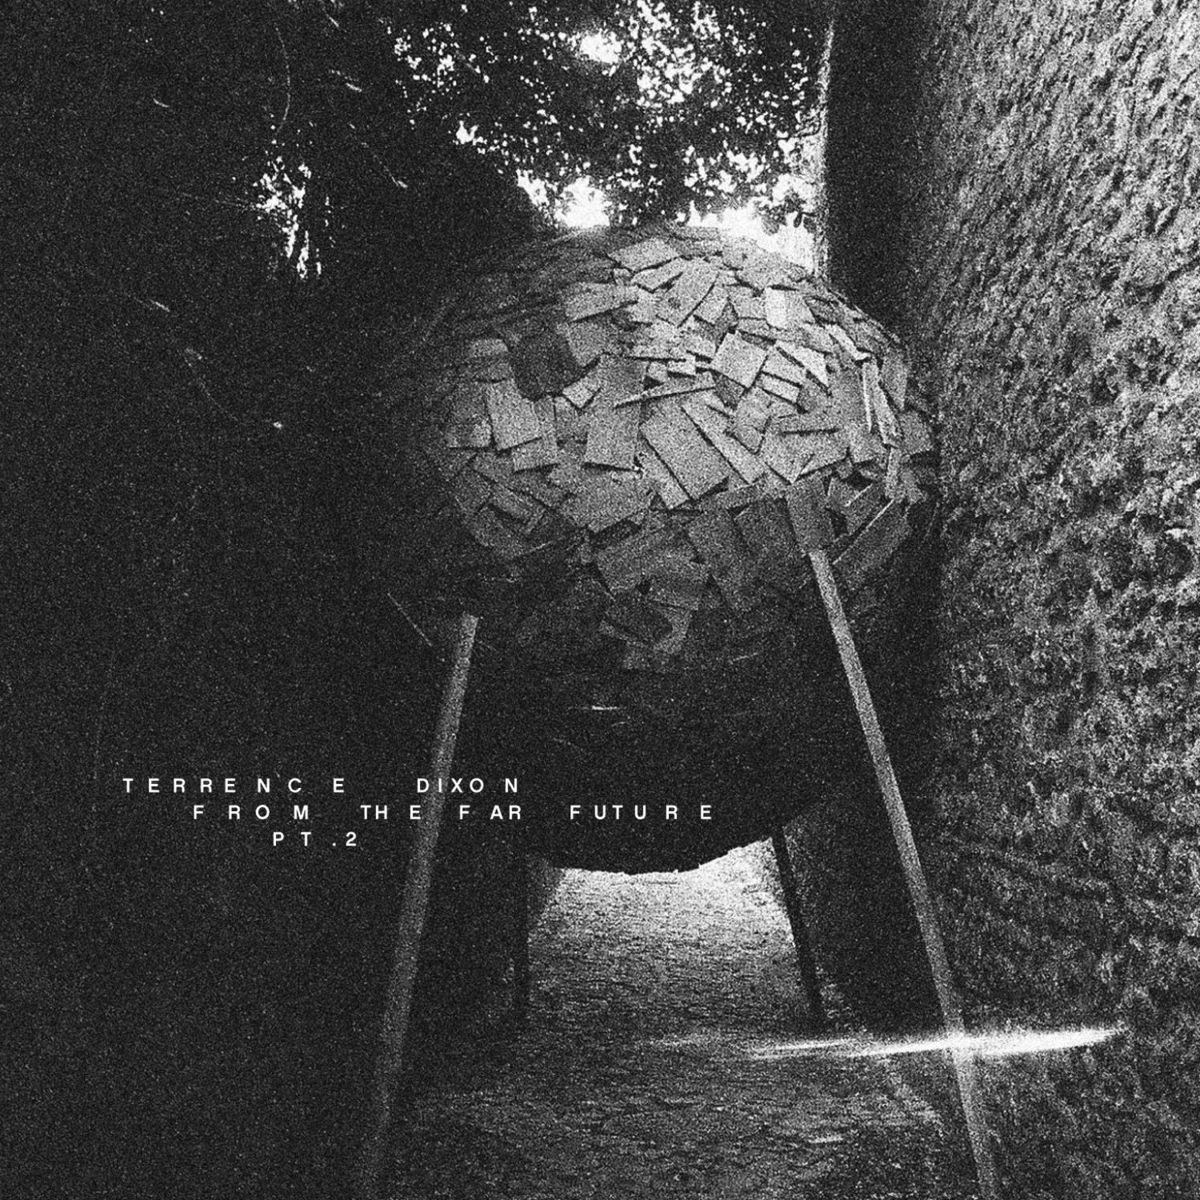 Terrence Dixon – From The Far Future Pt. 2 (Tresor)